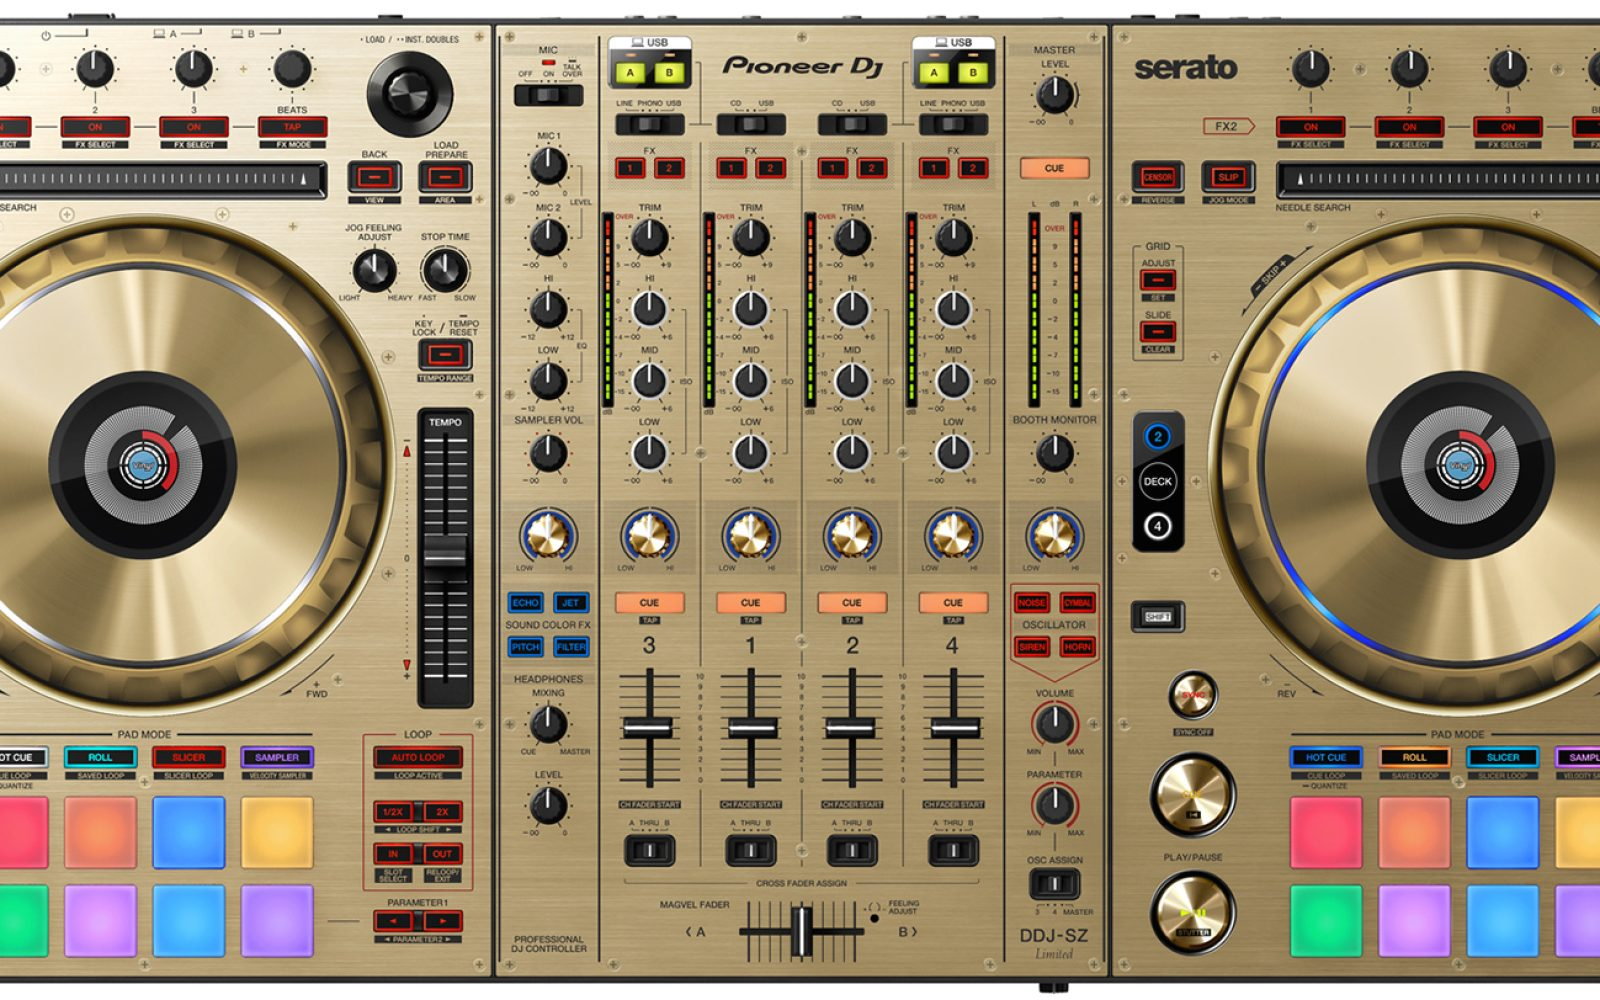 Here's a look at Pioneer's new all-gold limited edition DJ